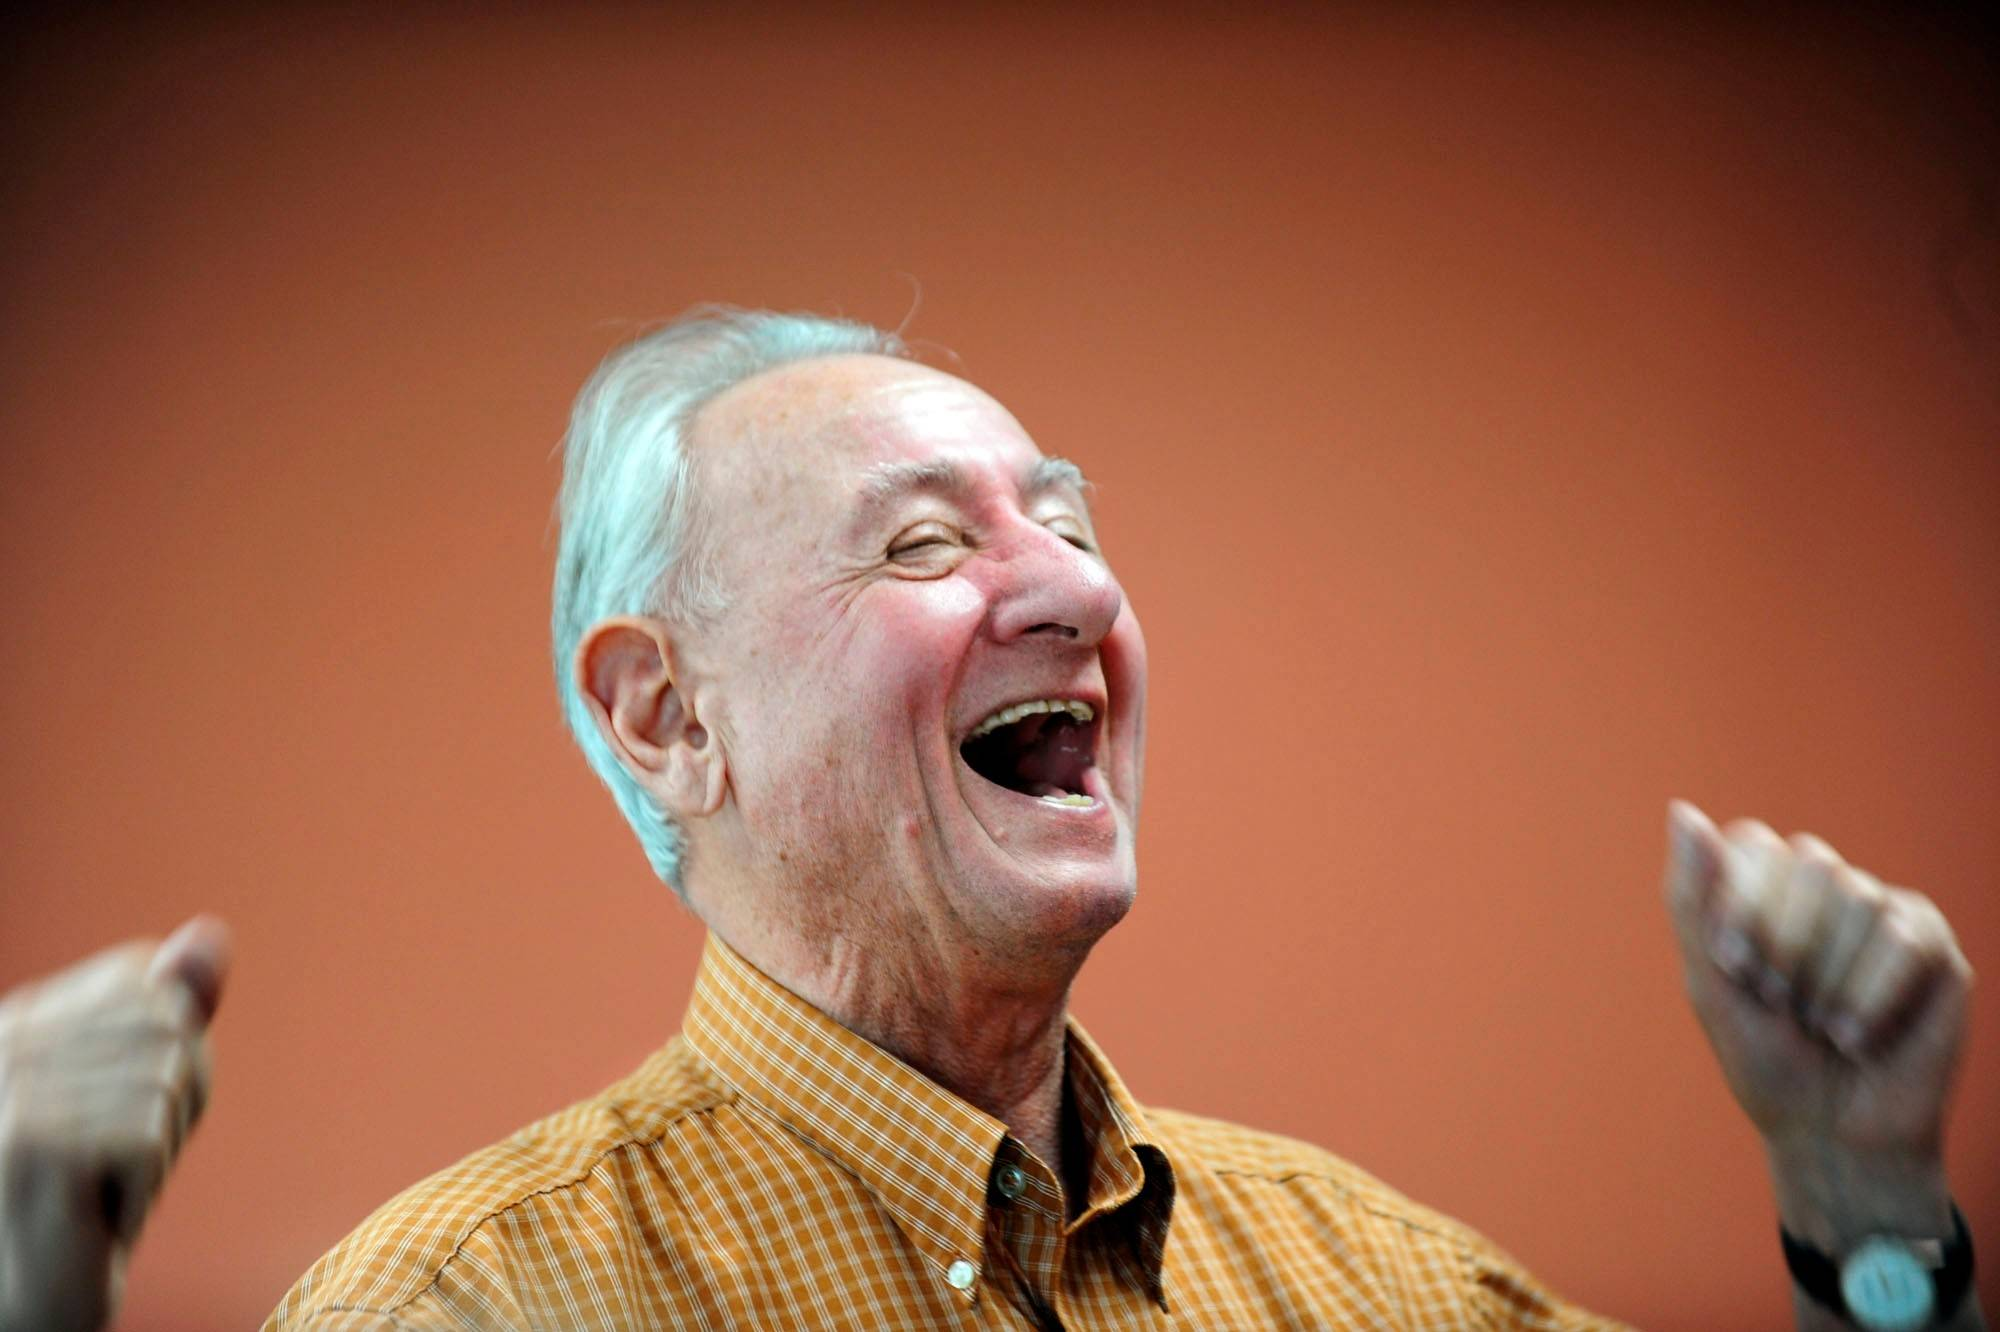 A new study shows laughter may improve short-term memory.